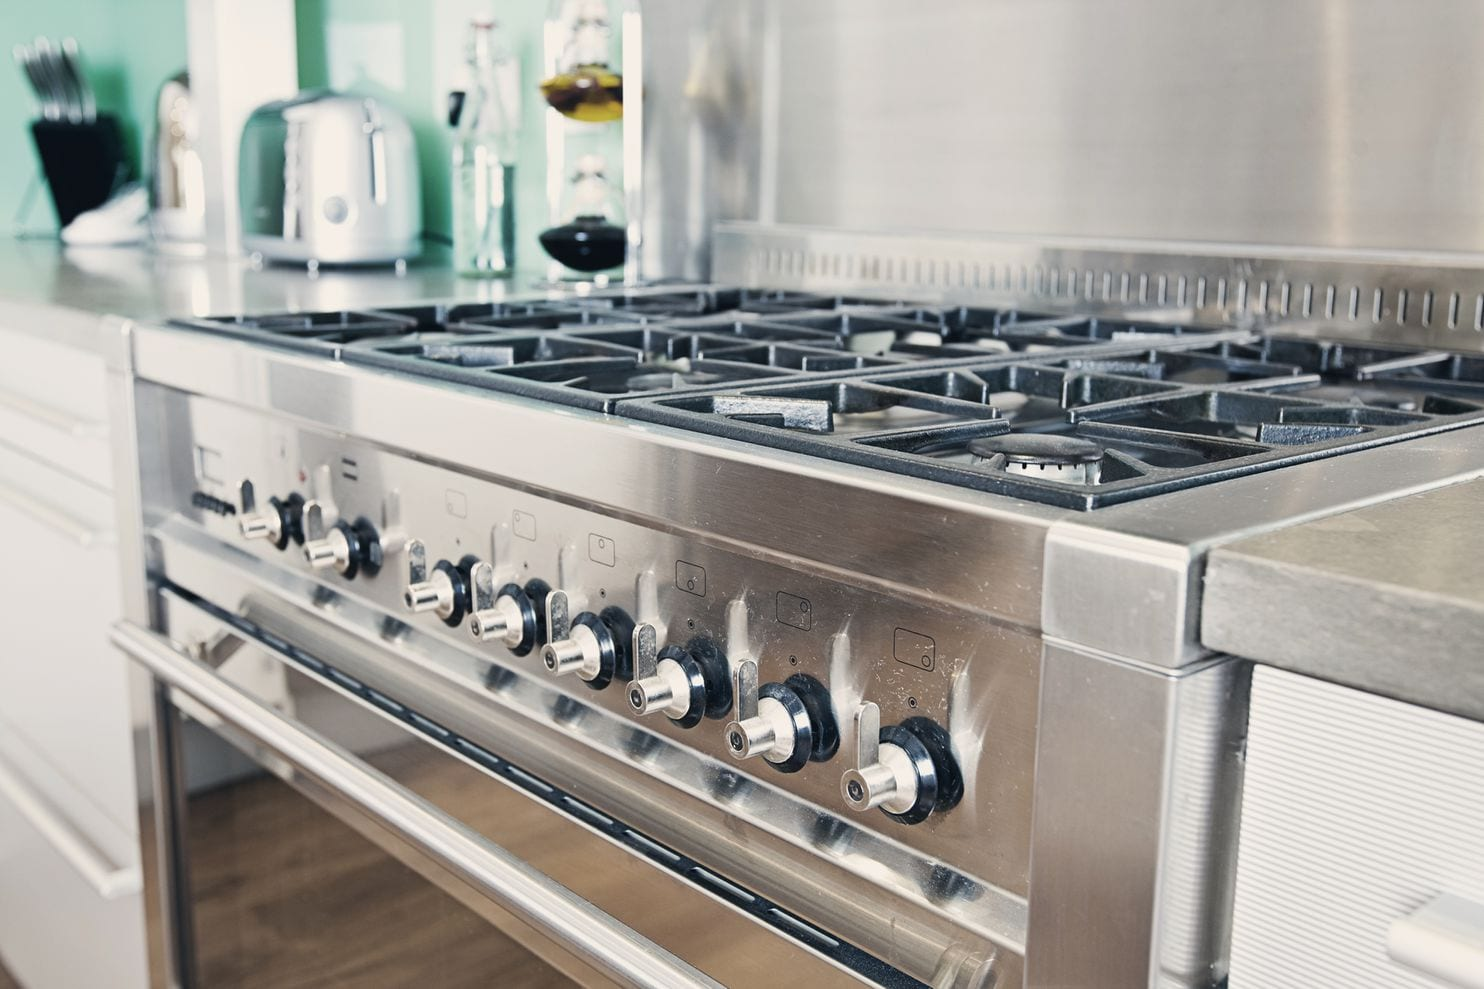 kitchen appliance store canisters 10 secrets to saving money on appliances the washington post